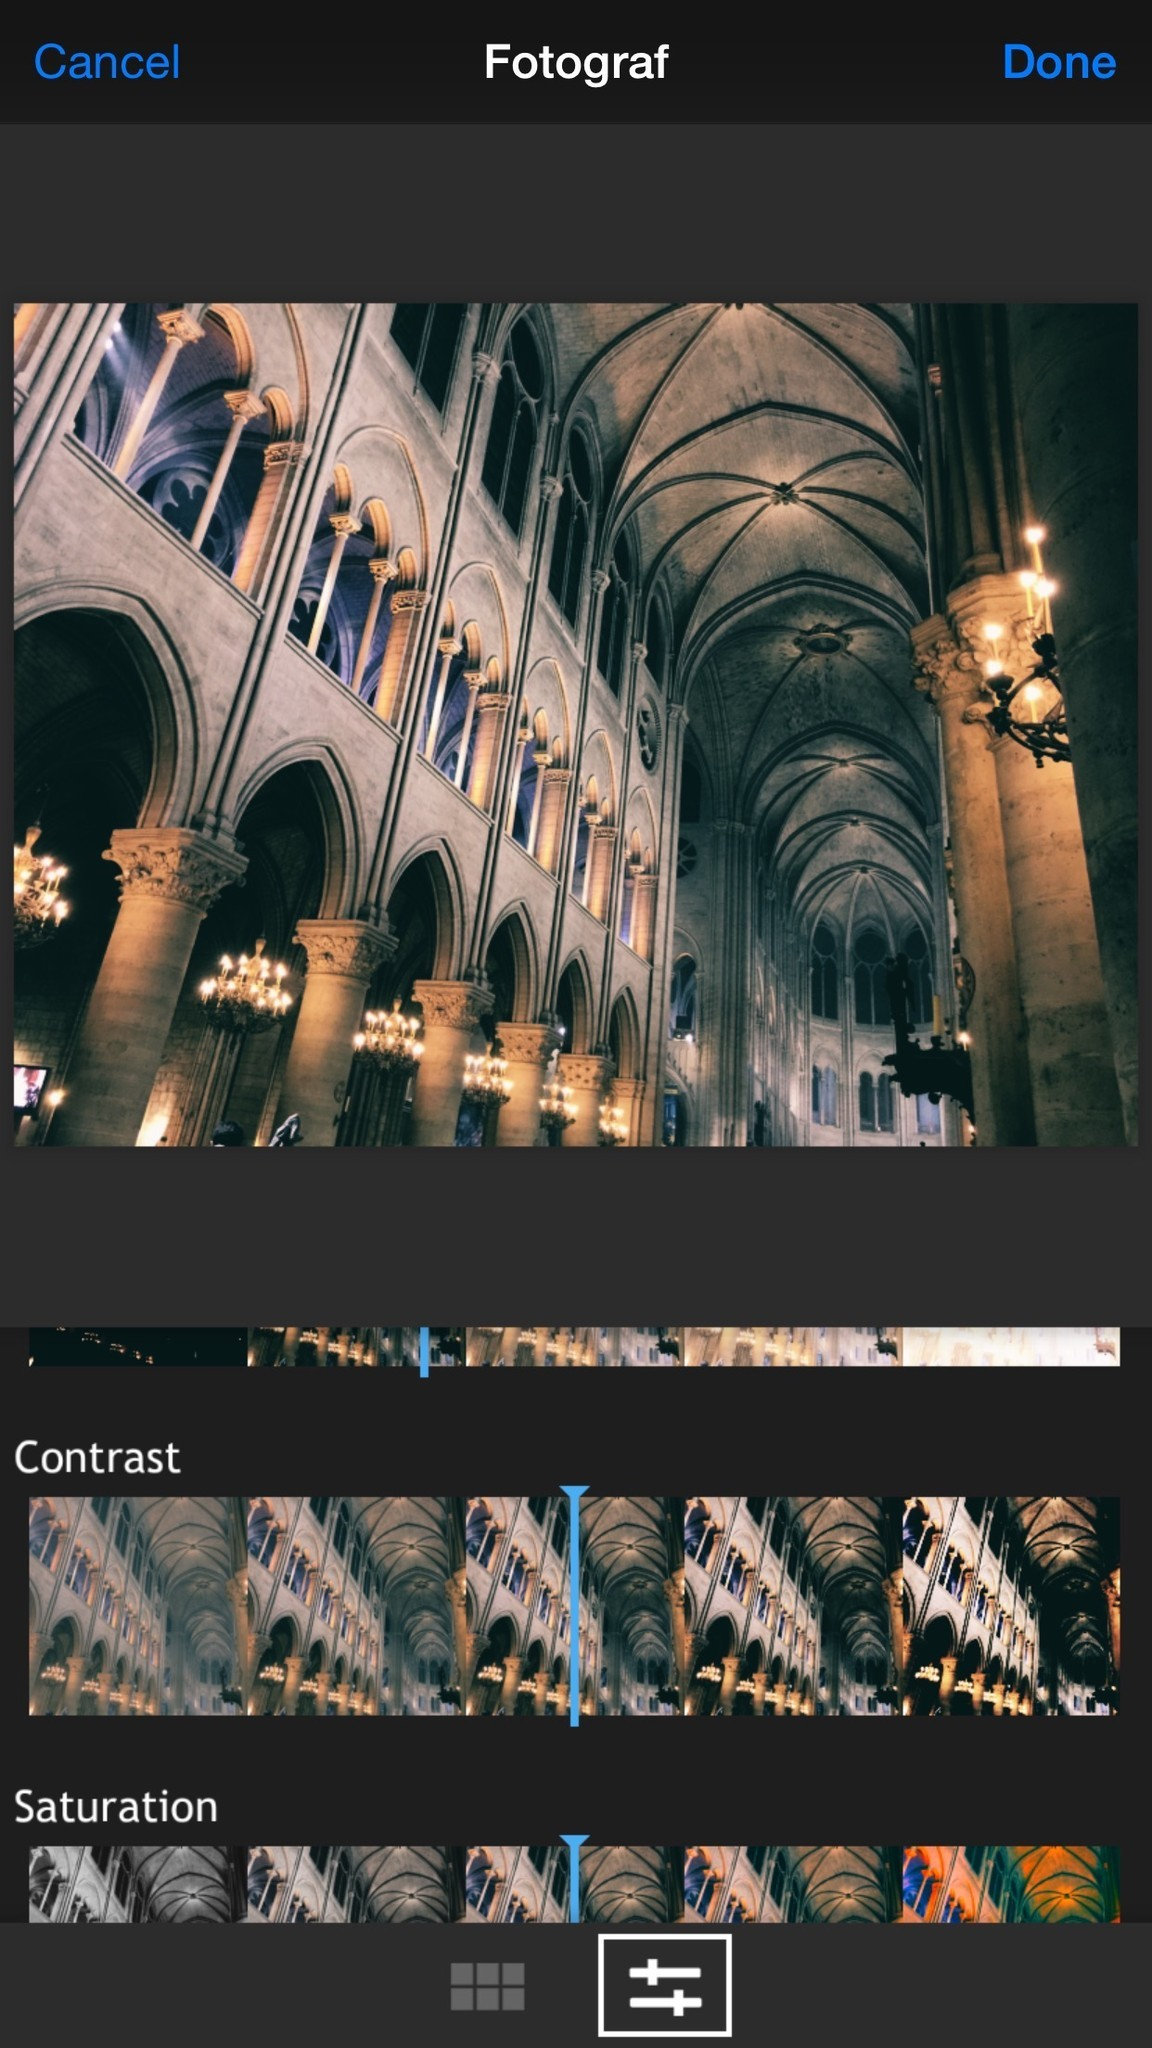 Best photo extension apps for iPhone: Fotograf